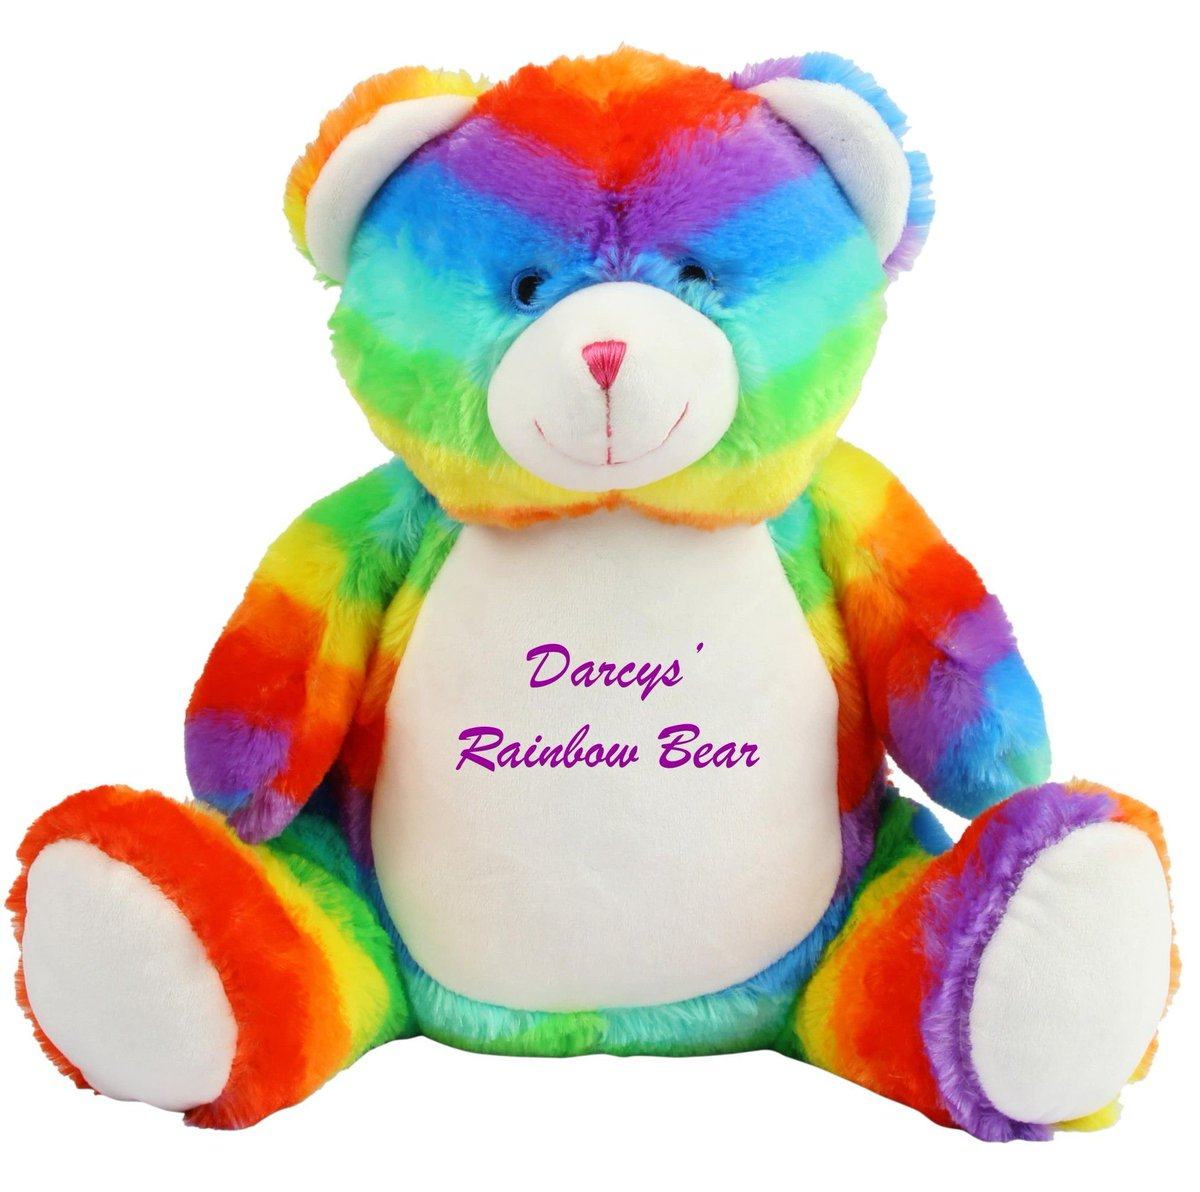 #WIN one of new #personalised rainbow #bear soft toys  Simply RT + F to enter   https:// buff.ly/2gIkFrJ  &nbsp;    #giveaway #prize #competition #comp<br>http://pic.twitter.com/OeHVblNz5B